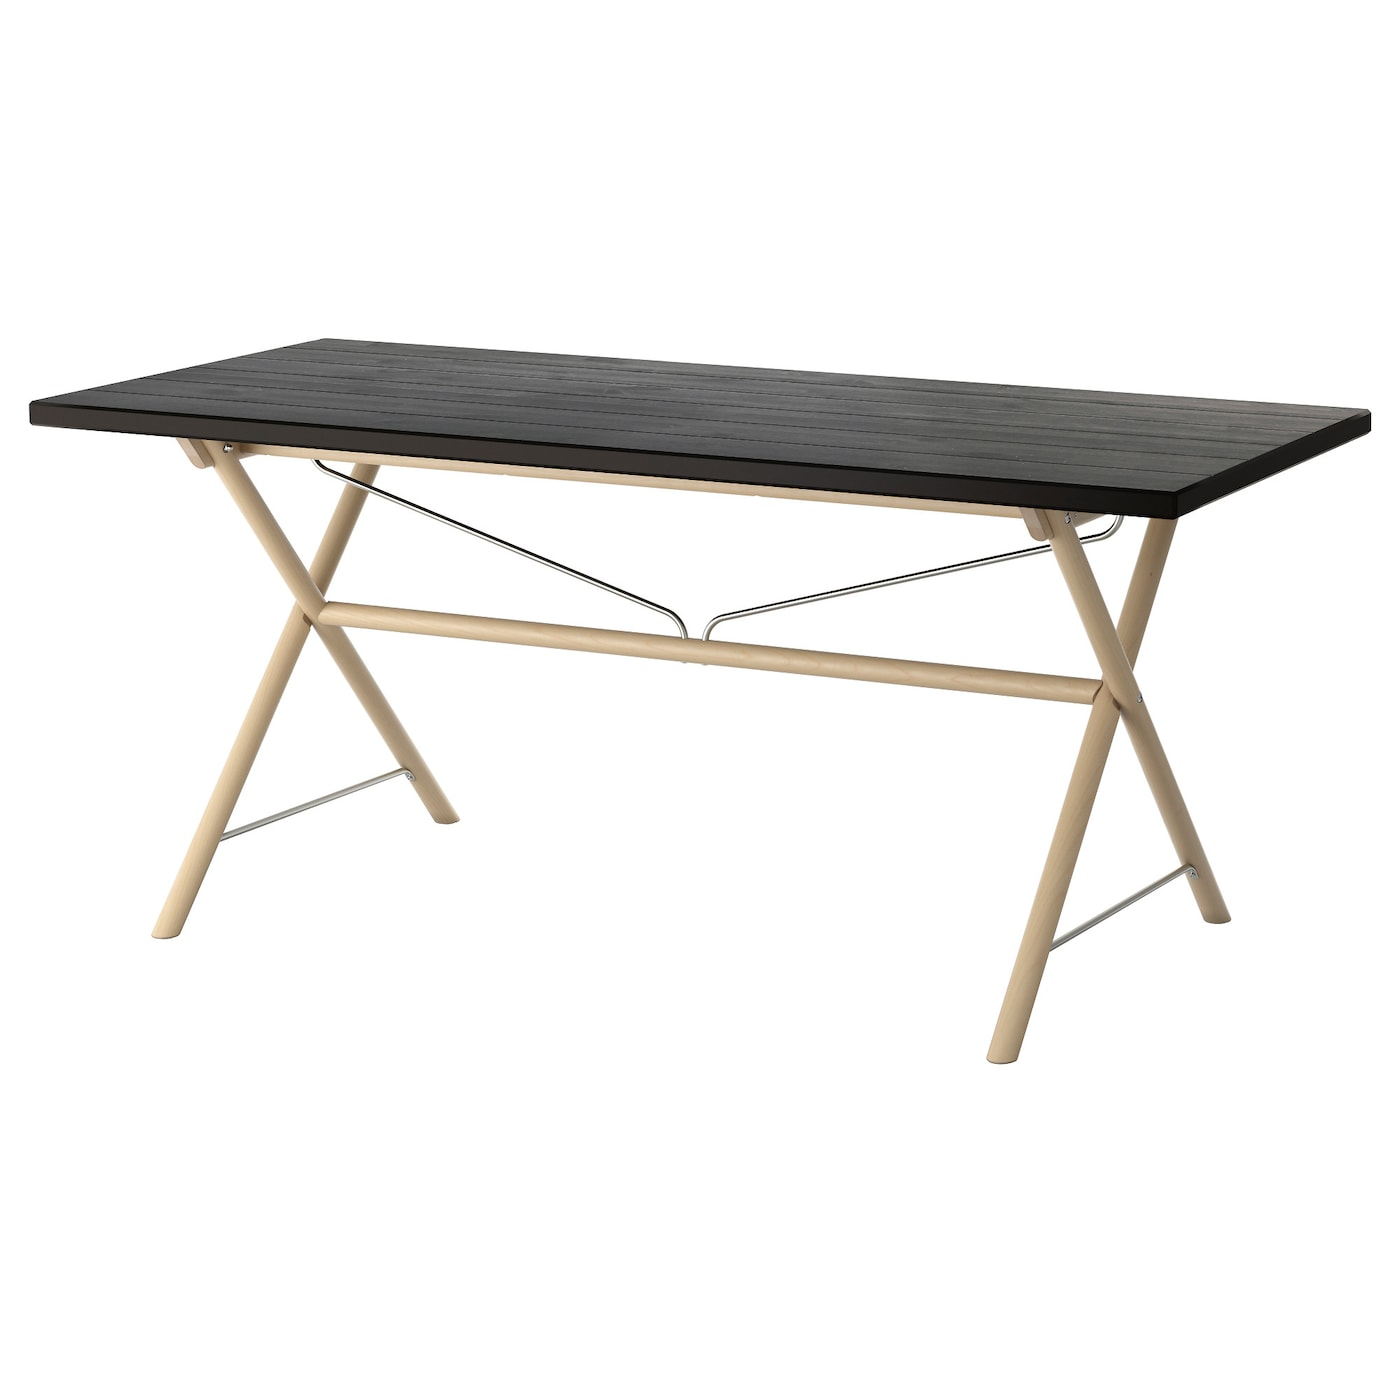 Ryggestad table black dalshult birch 170x78 cm ikea for Table cuisine 80 x 60